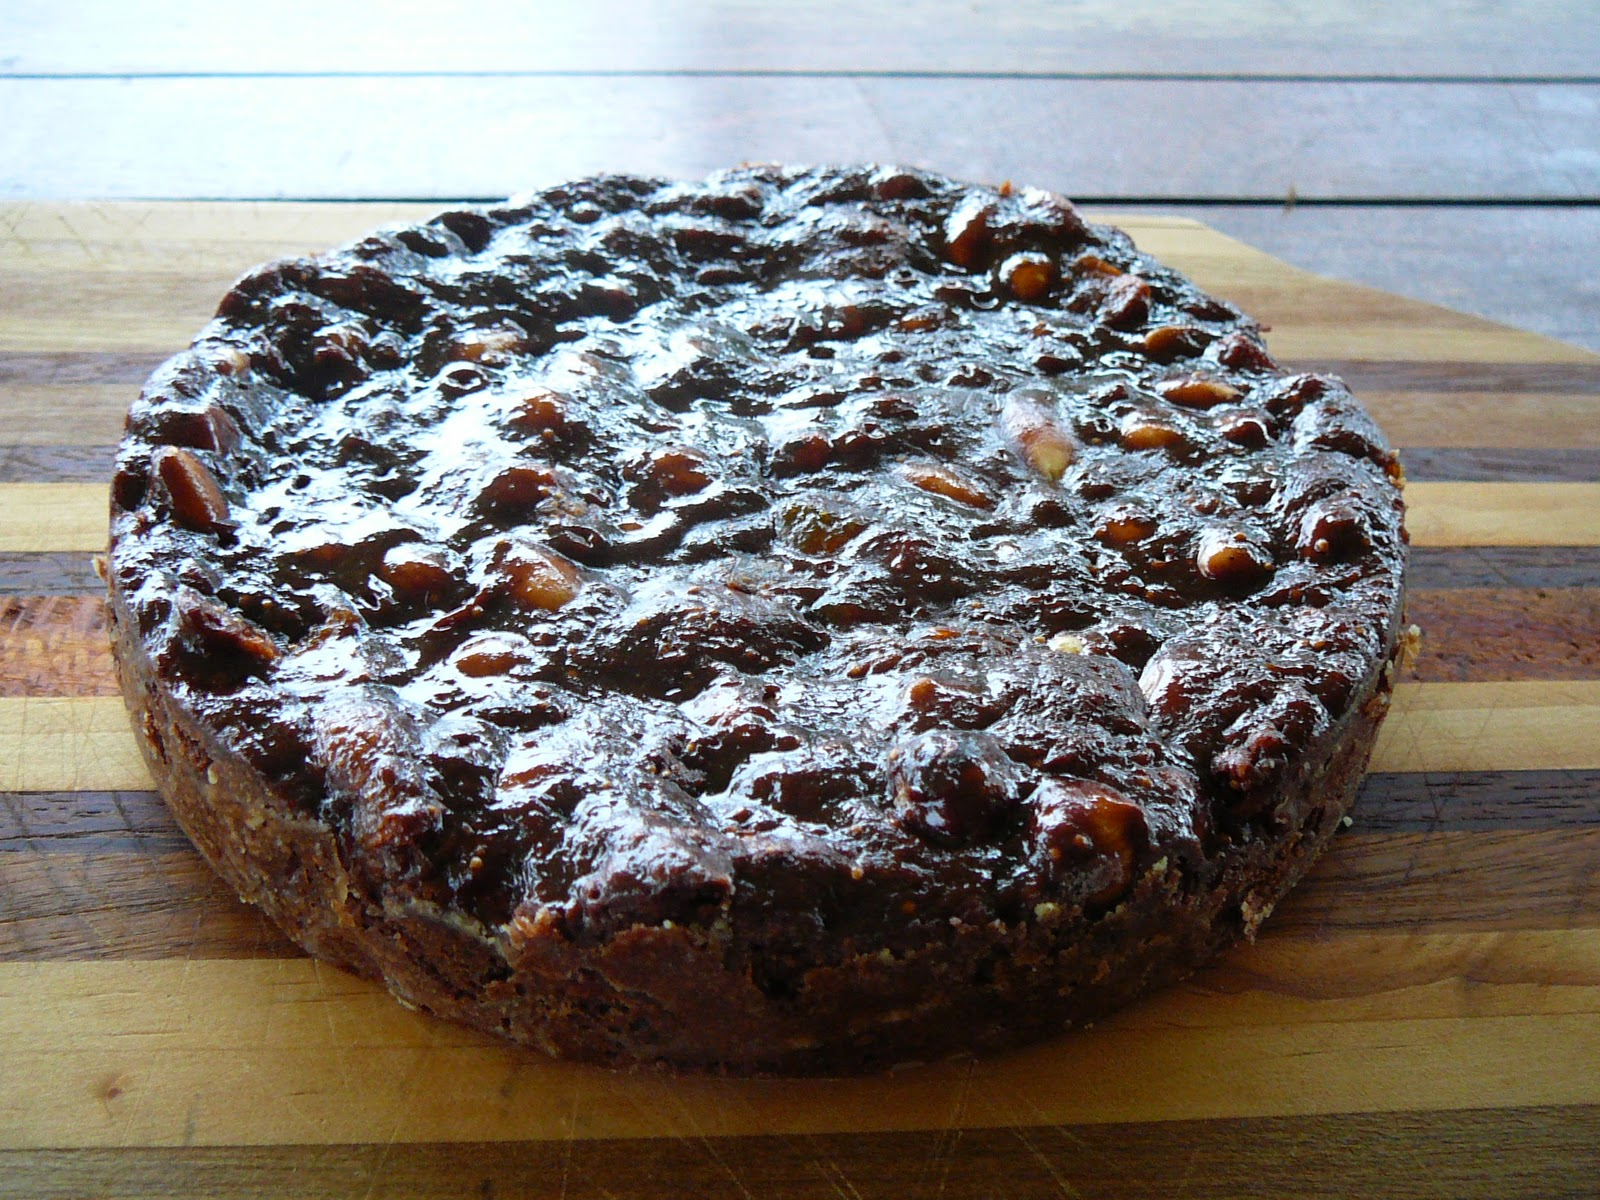 Marcellina in Cucina: Chocolate, Apricot and Hazelnut Panforte